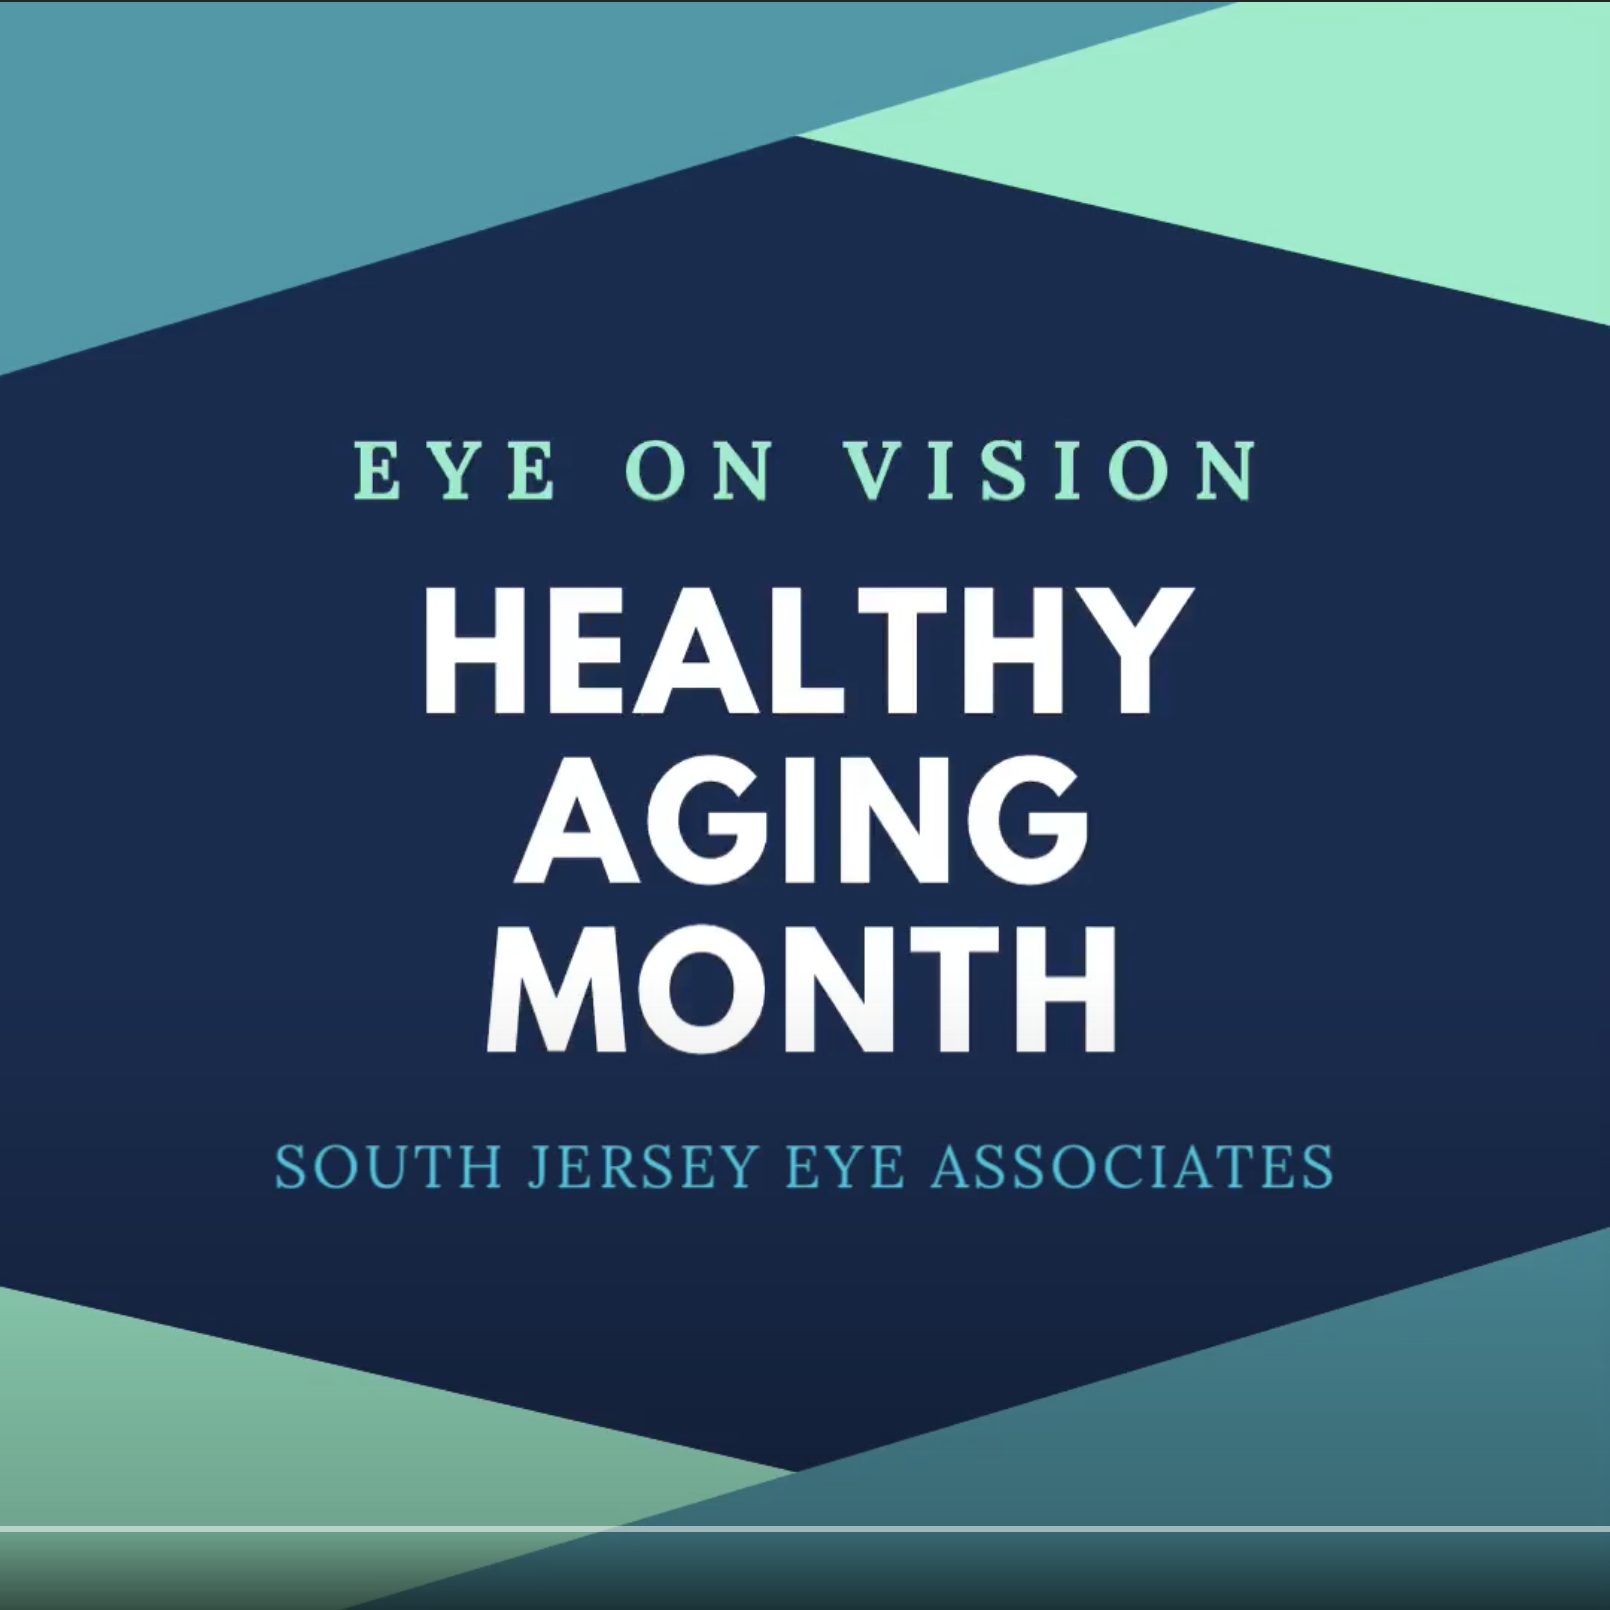 EYE ON VISION: Healthy Aging Month